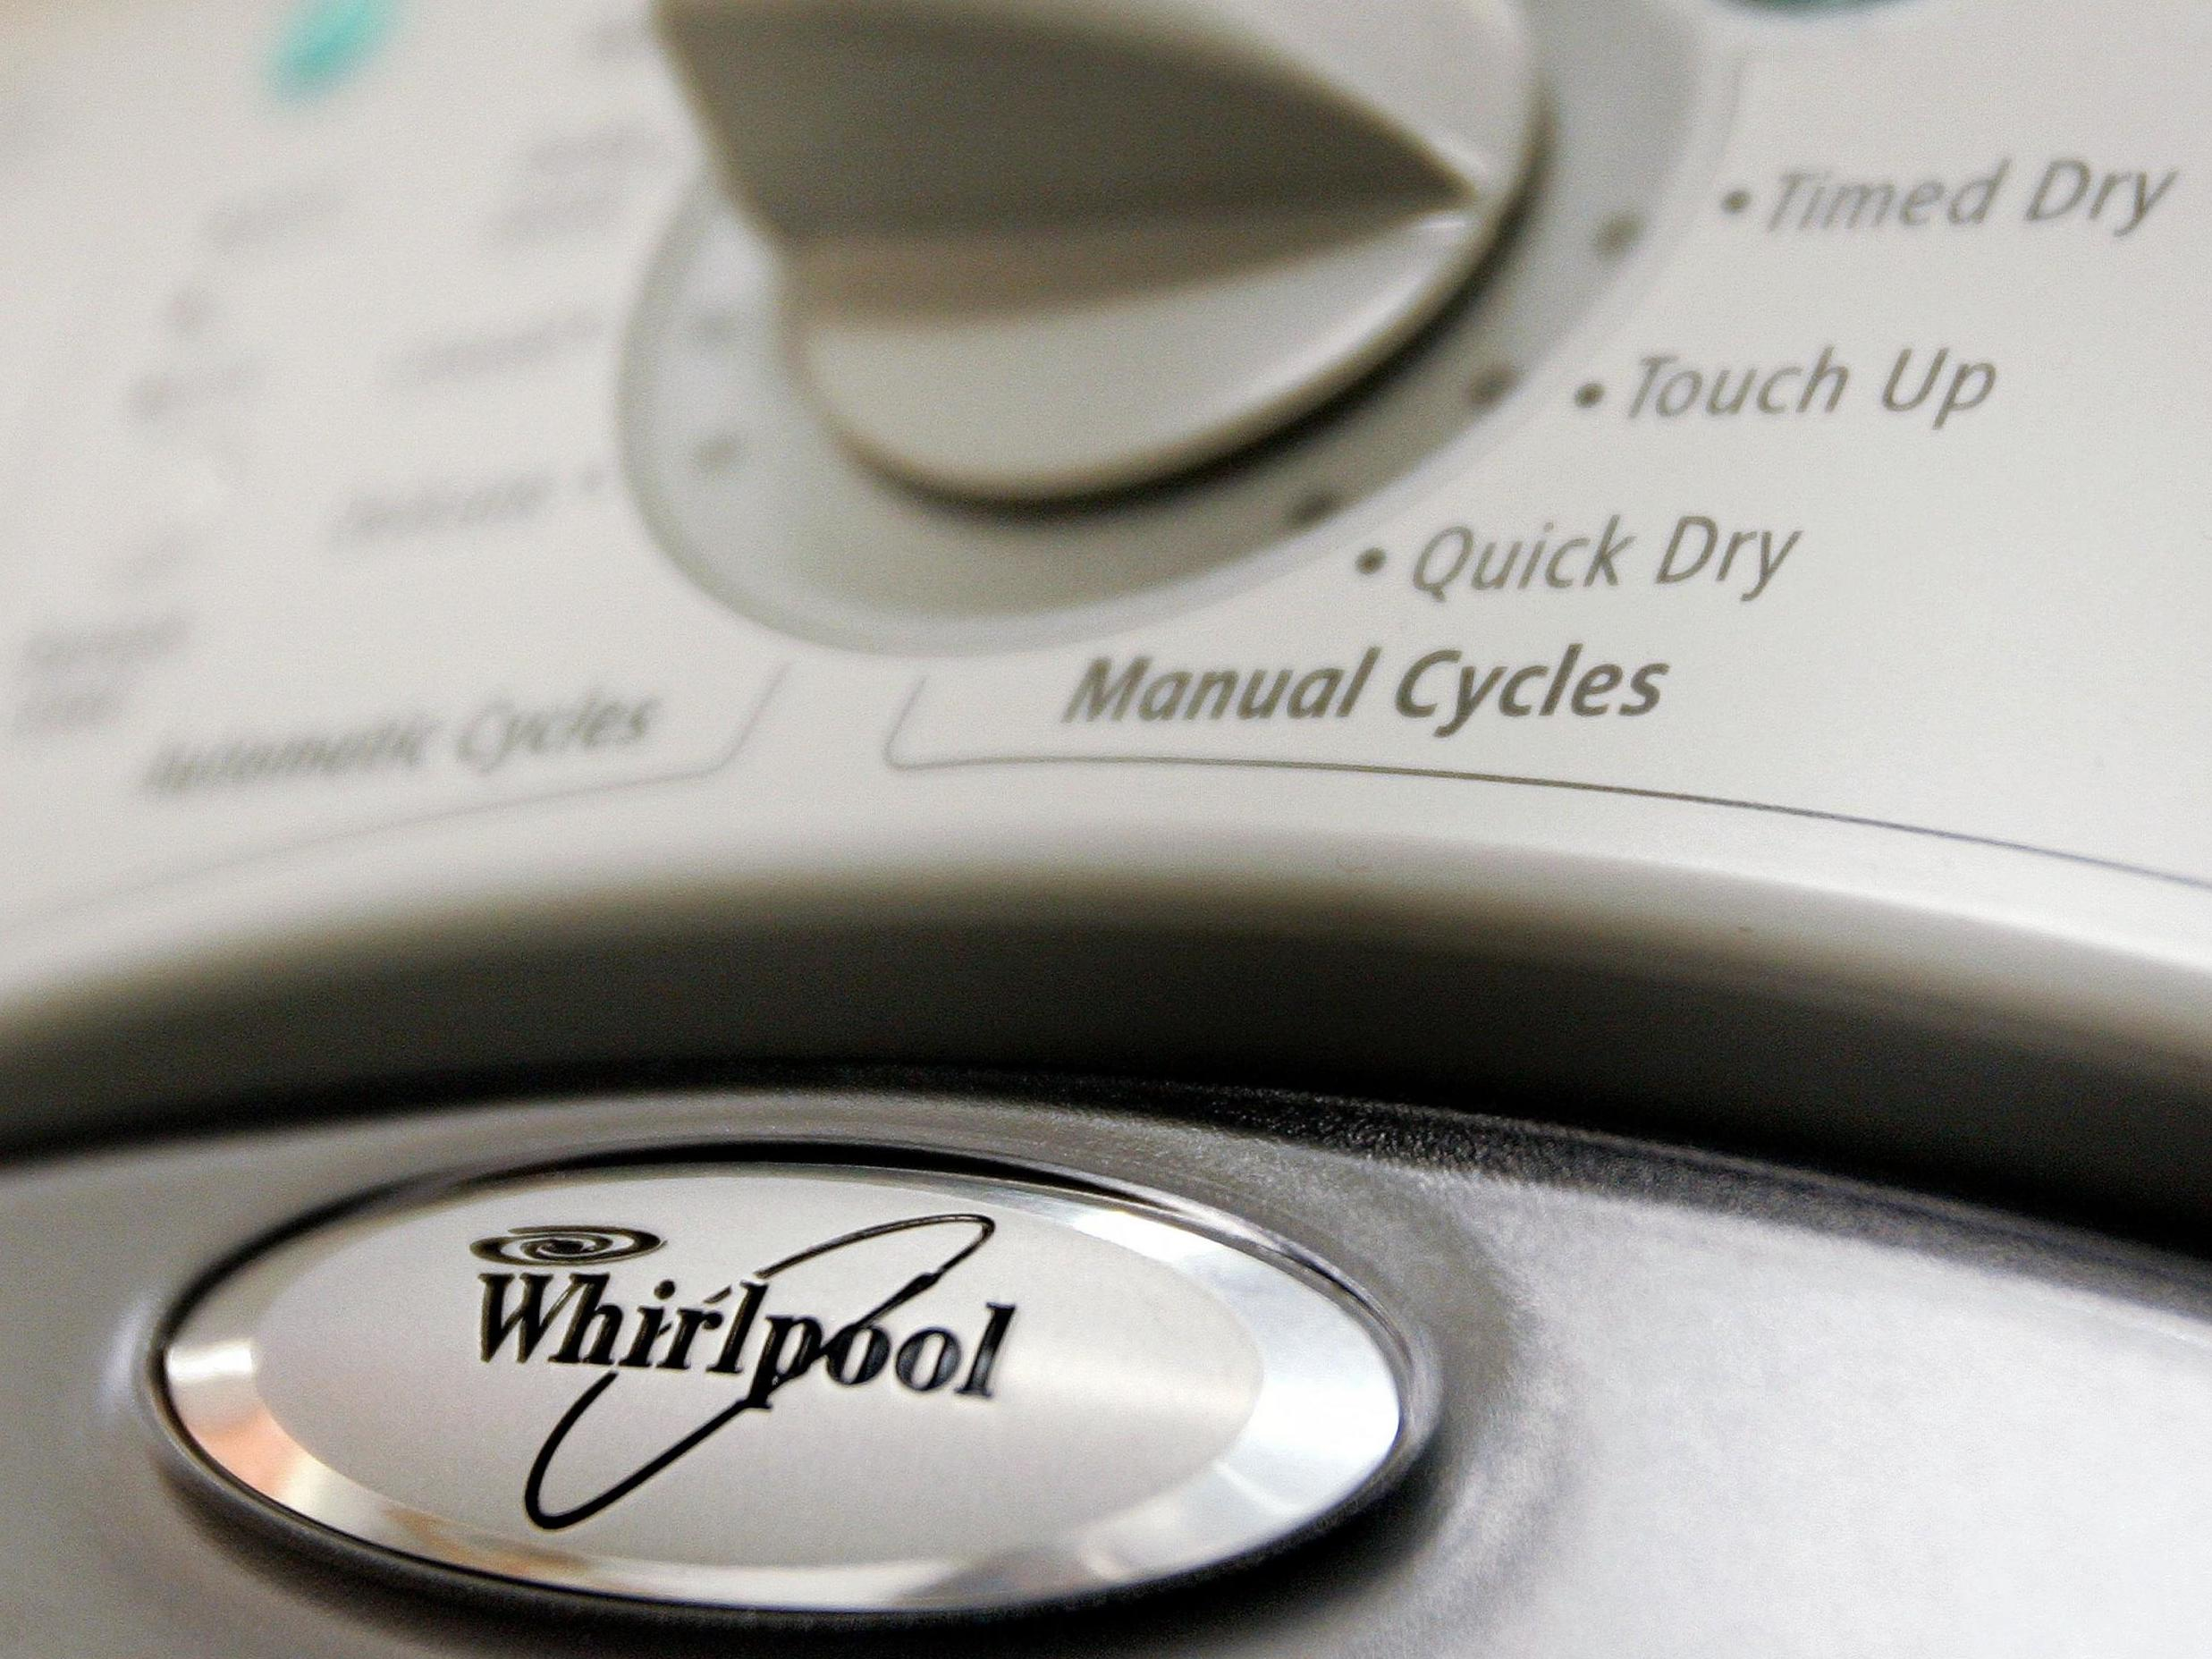 Whirlpool admits 800,000 faulty tumble dryers could be at risk of catching fire